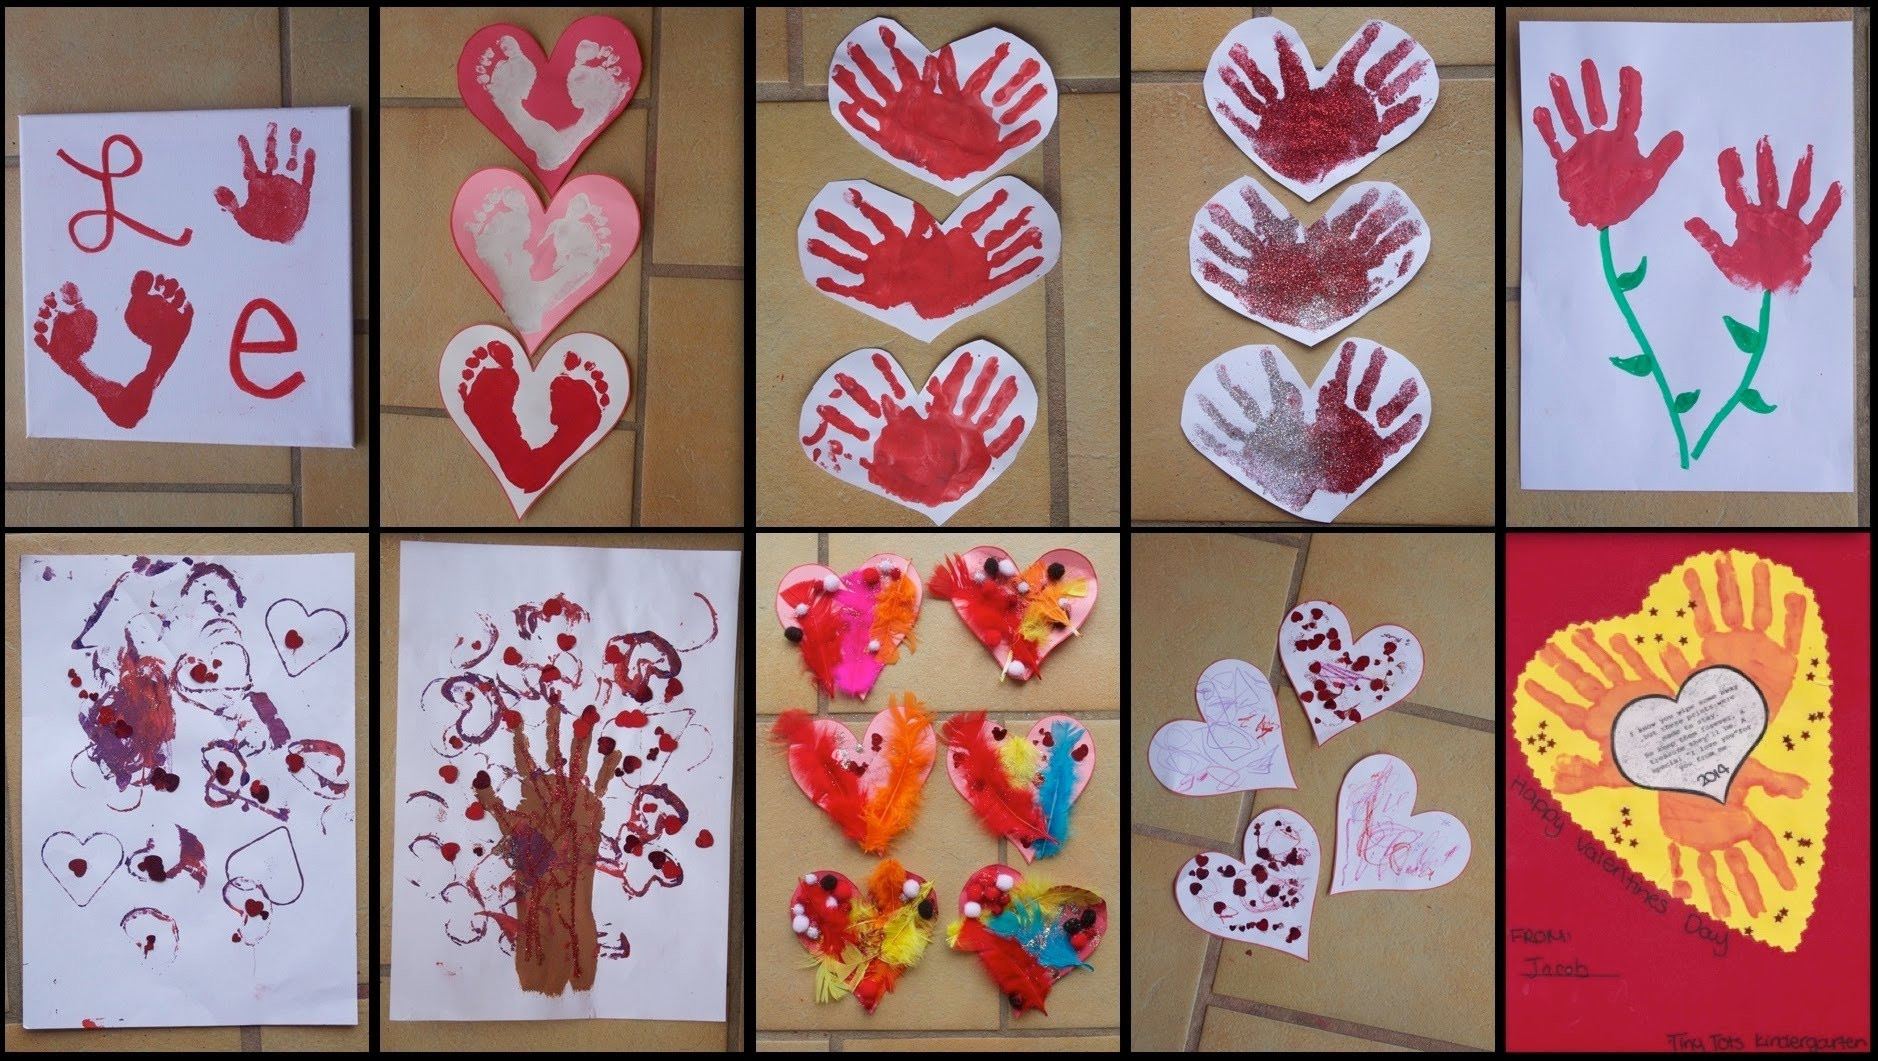 Best ideas about Valentine Arts And Crafts For Preschoolers . Save or Pin 9 VALENTINE'S DAY CRAFTS FOR TODDLERS KIDS Now.